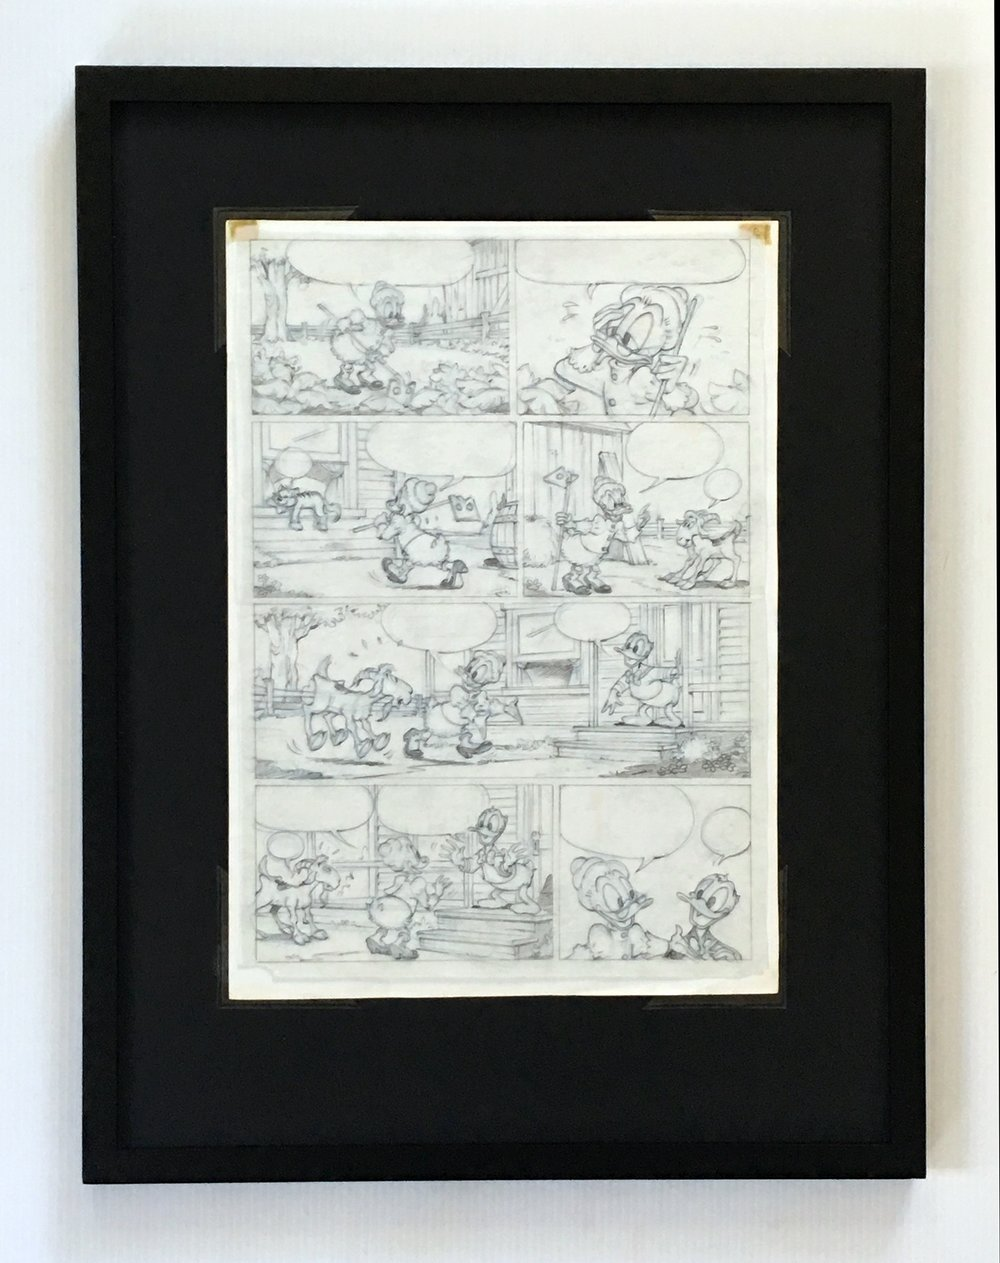 Penciled Layer Displayed on Reverse Side of Inked Layer  - Framing Materials Sold Separately